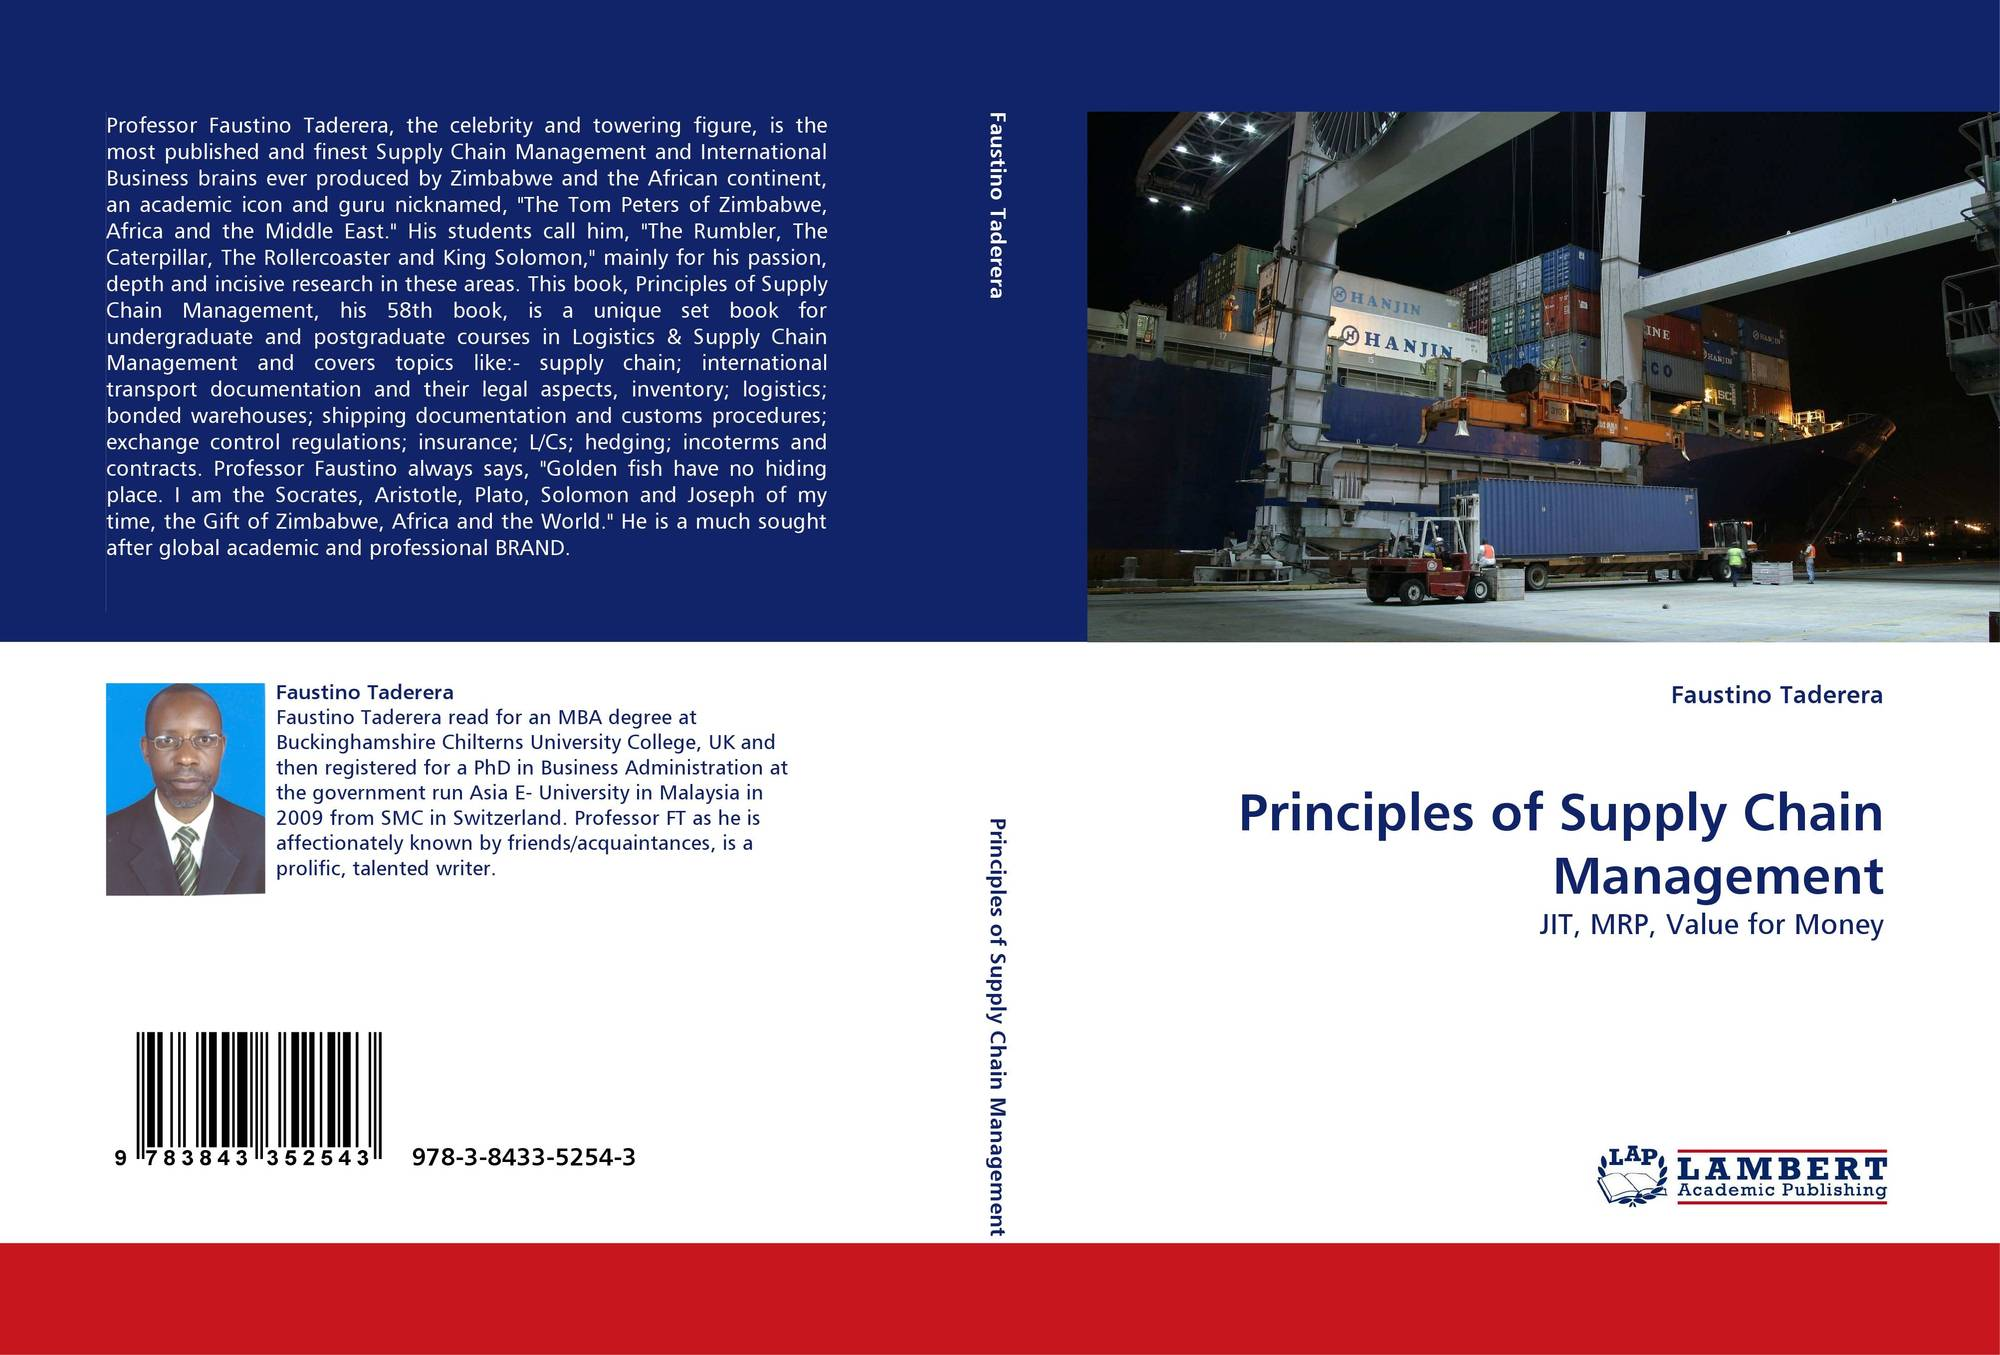 7 principle of supply chain management